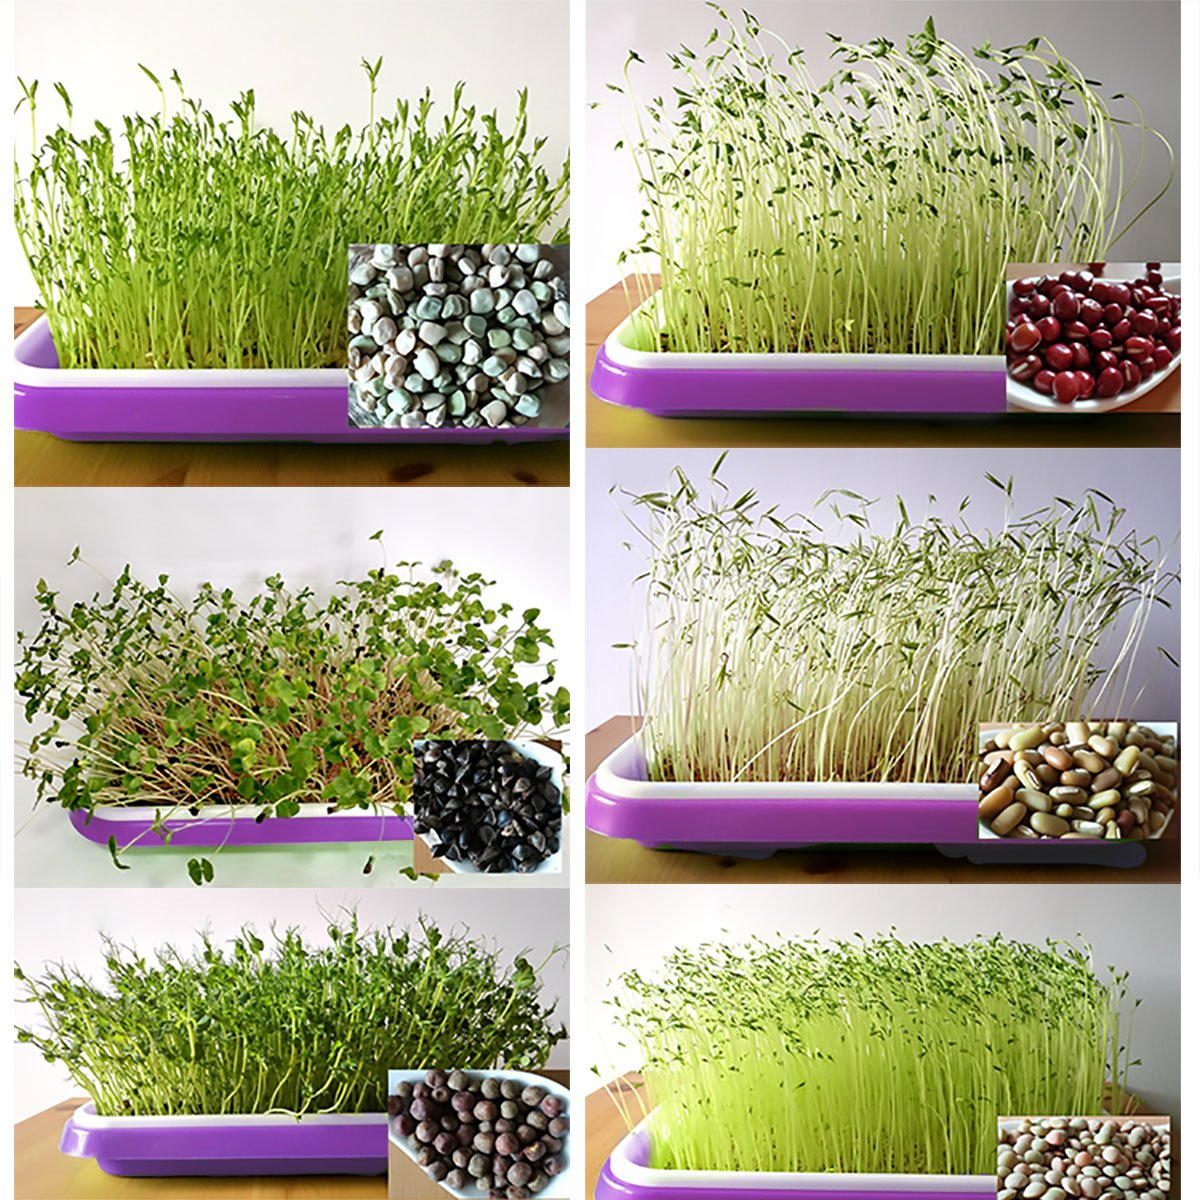 CHICTRY Seed Sprouter Soilless Culture Bean Dish Seedling Bud Sprouts Nursery Pot Double-Layer Big Capacity Hydroponics Wheat Grass Grower Implant Tray Purple One Size